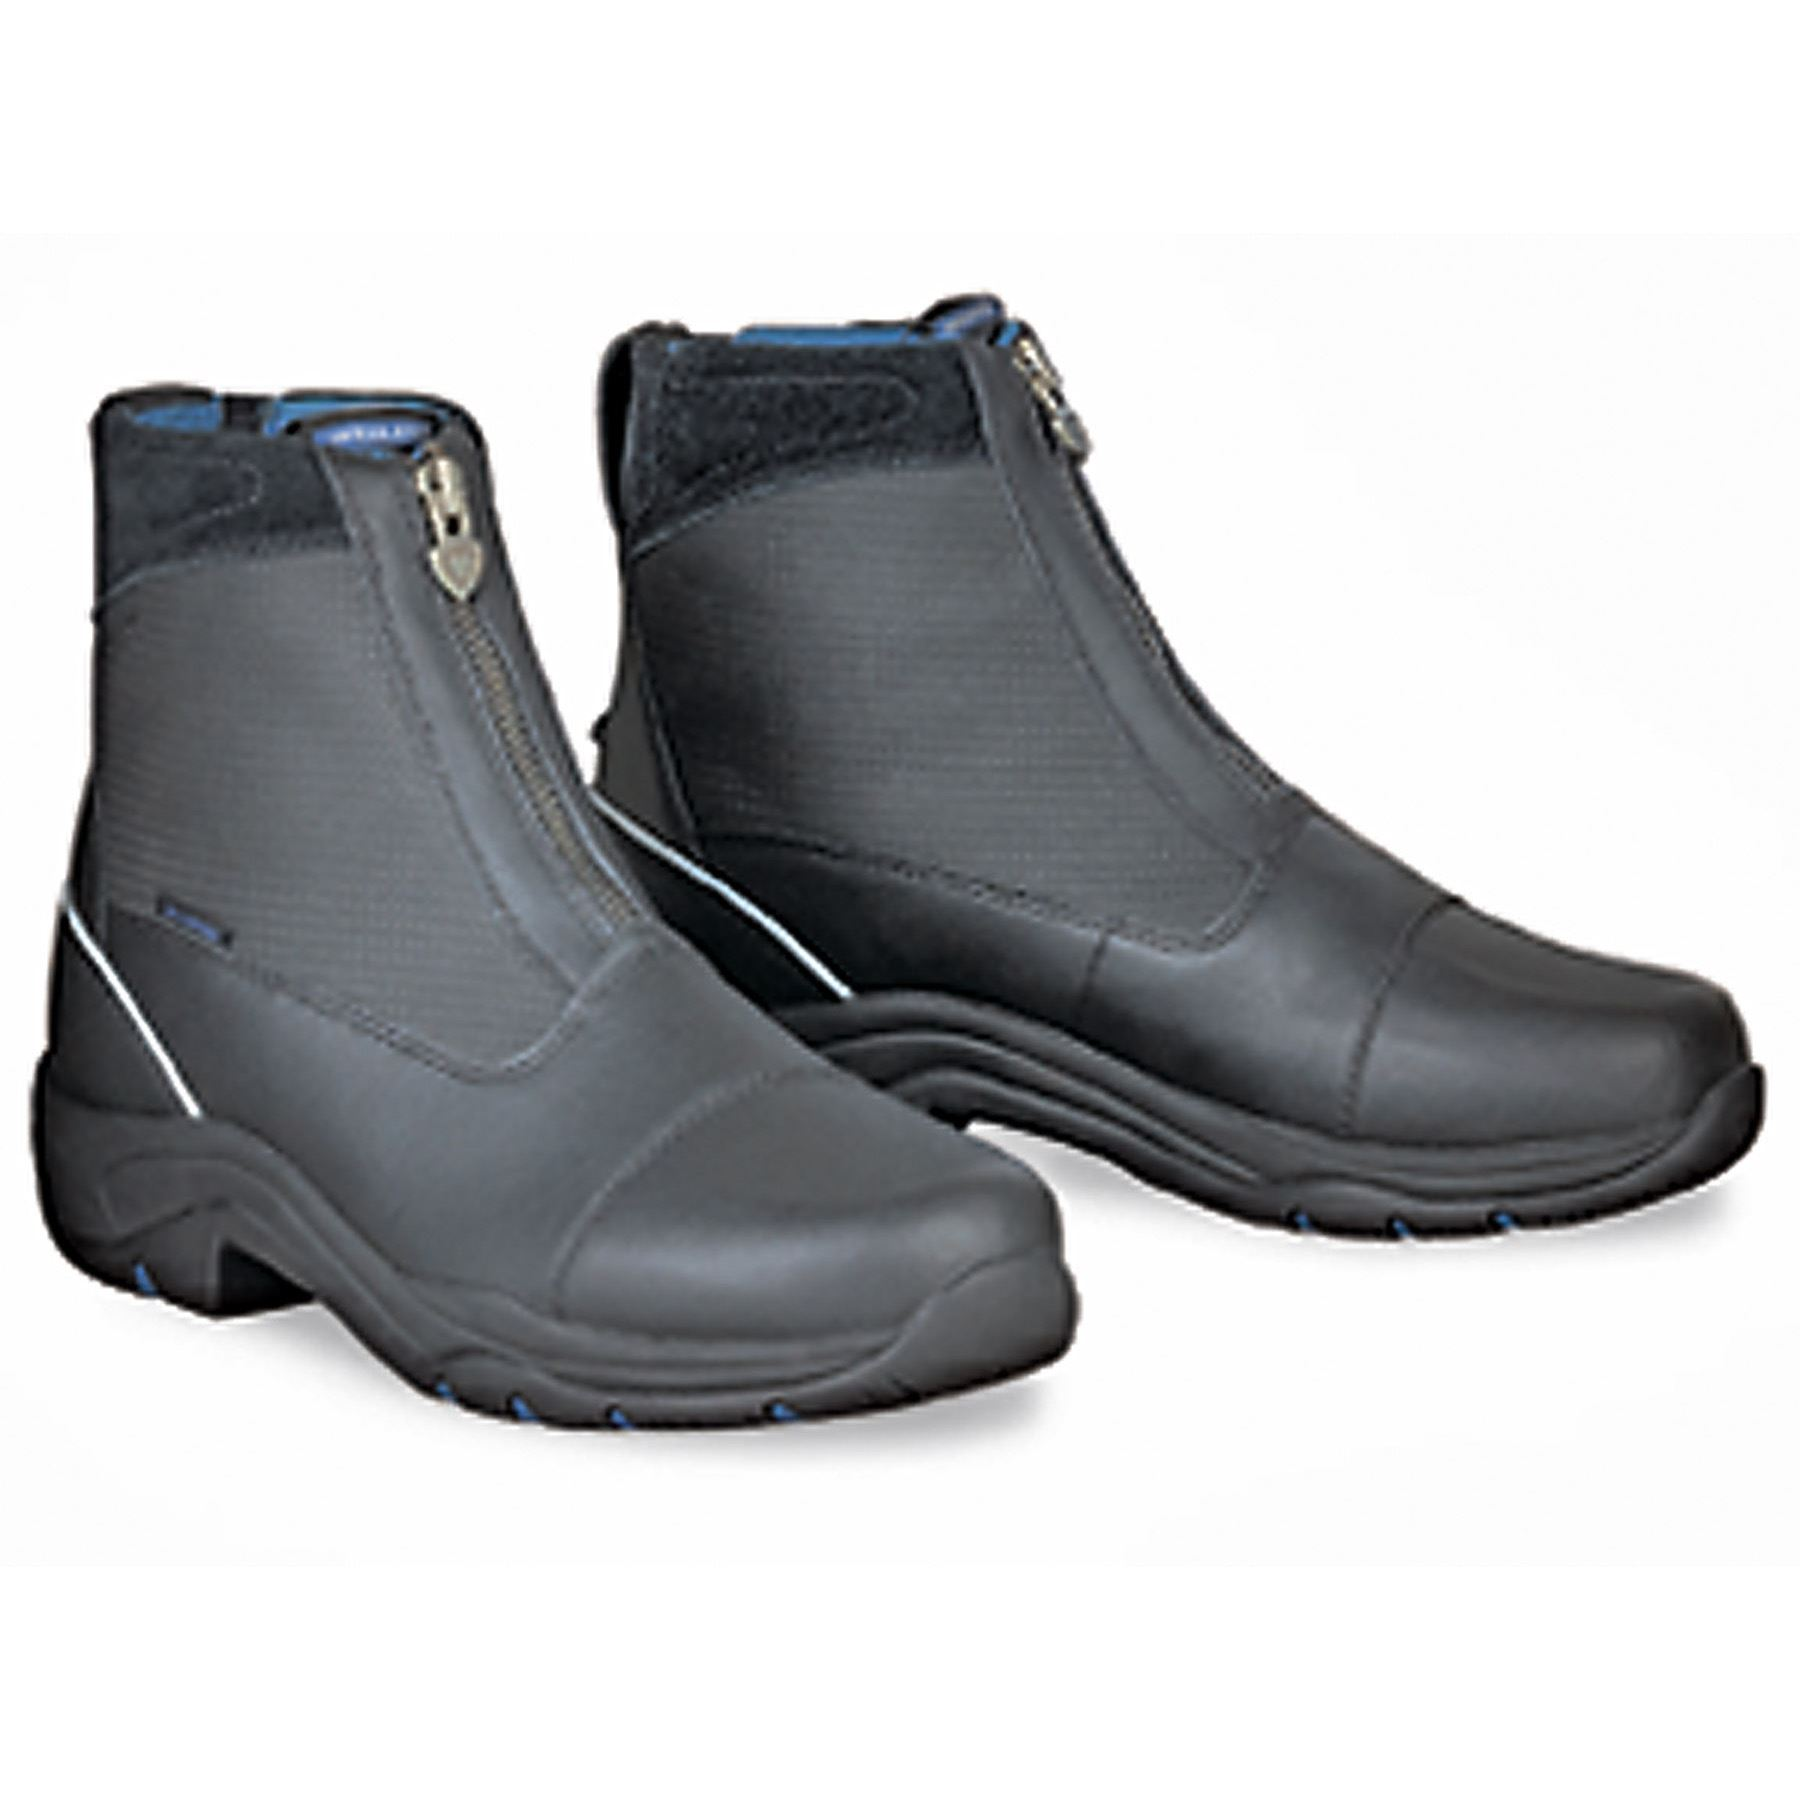 outlet on sale shopping superior quality Ariat Ladies Iceberg Winter Paddock Boots